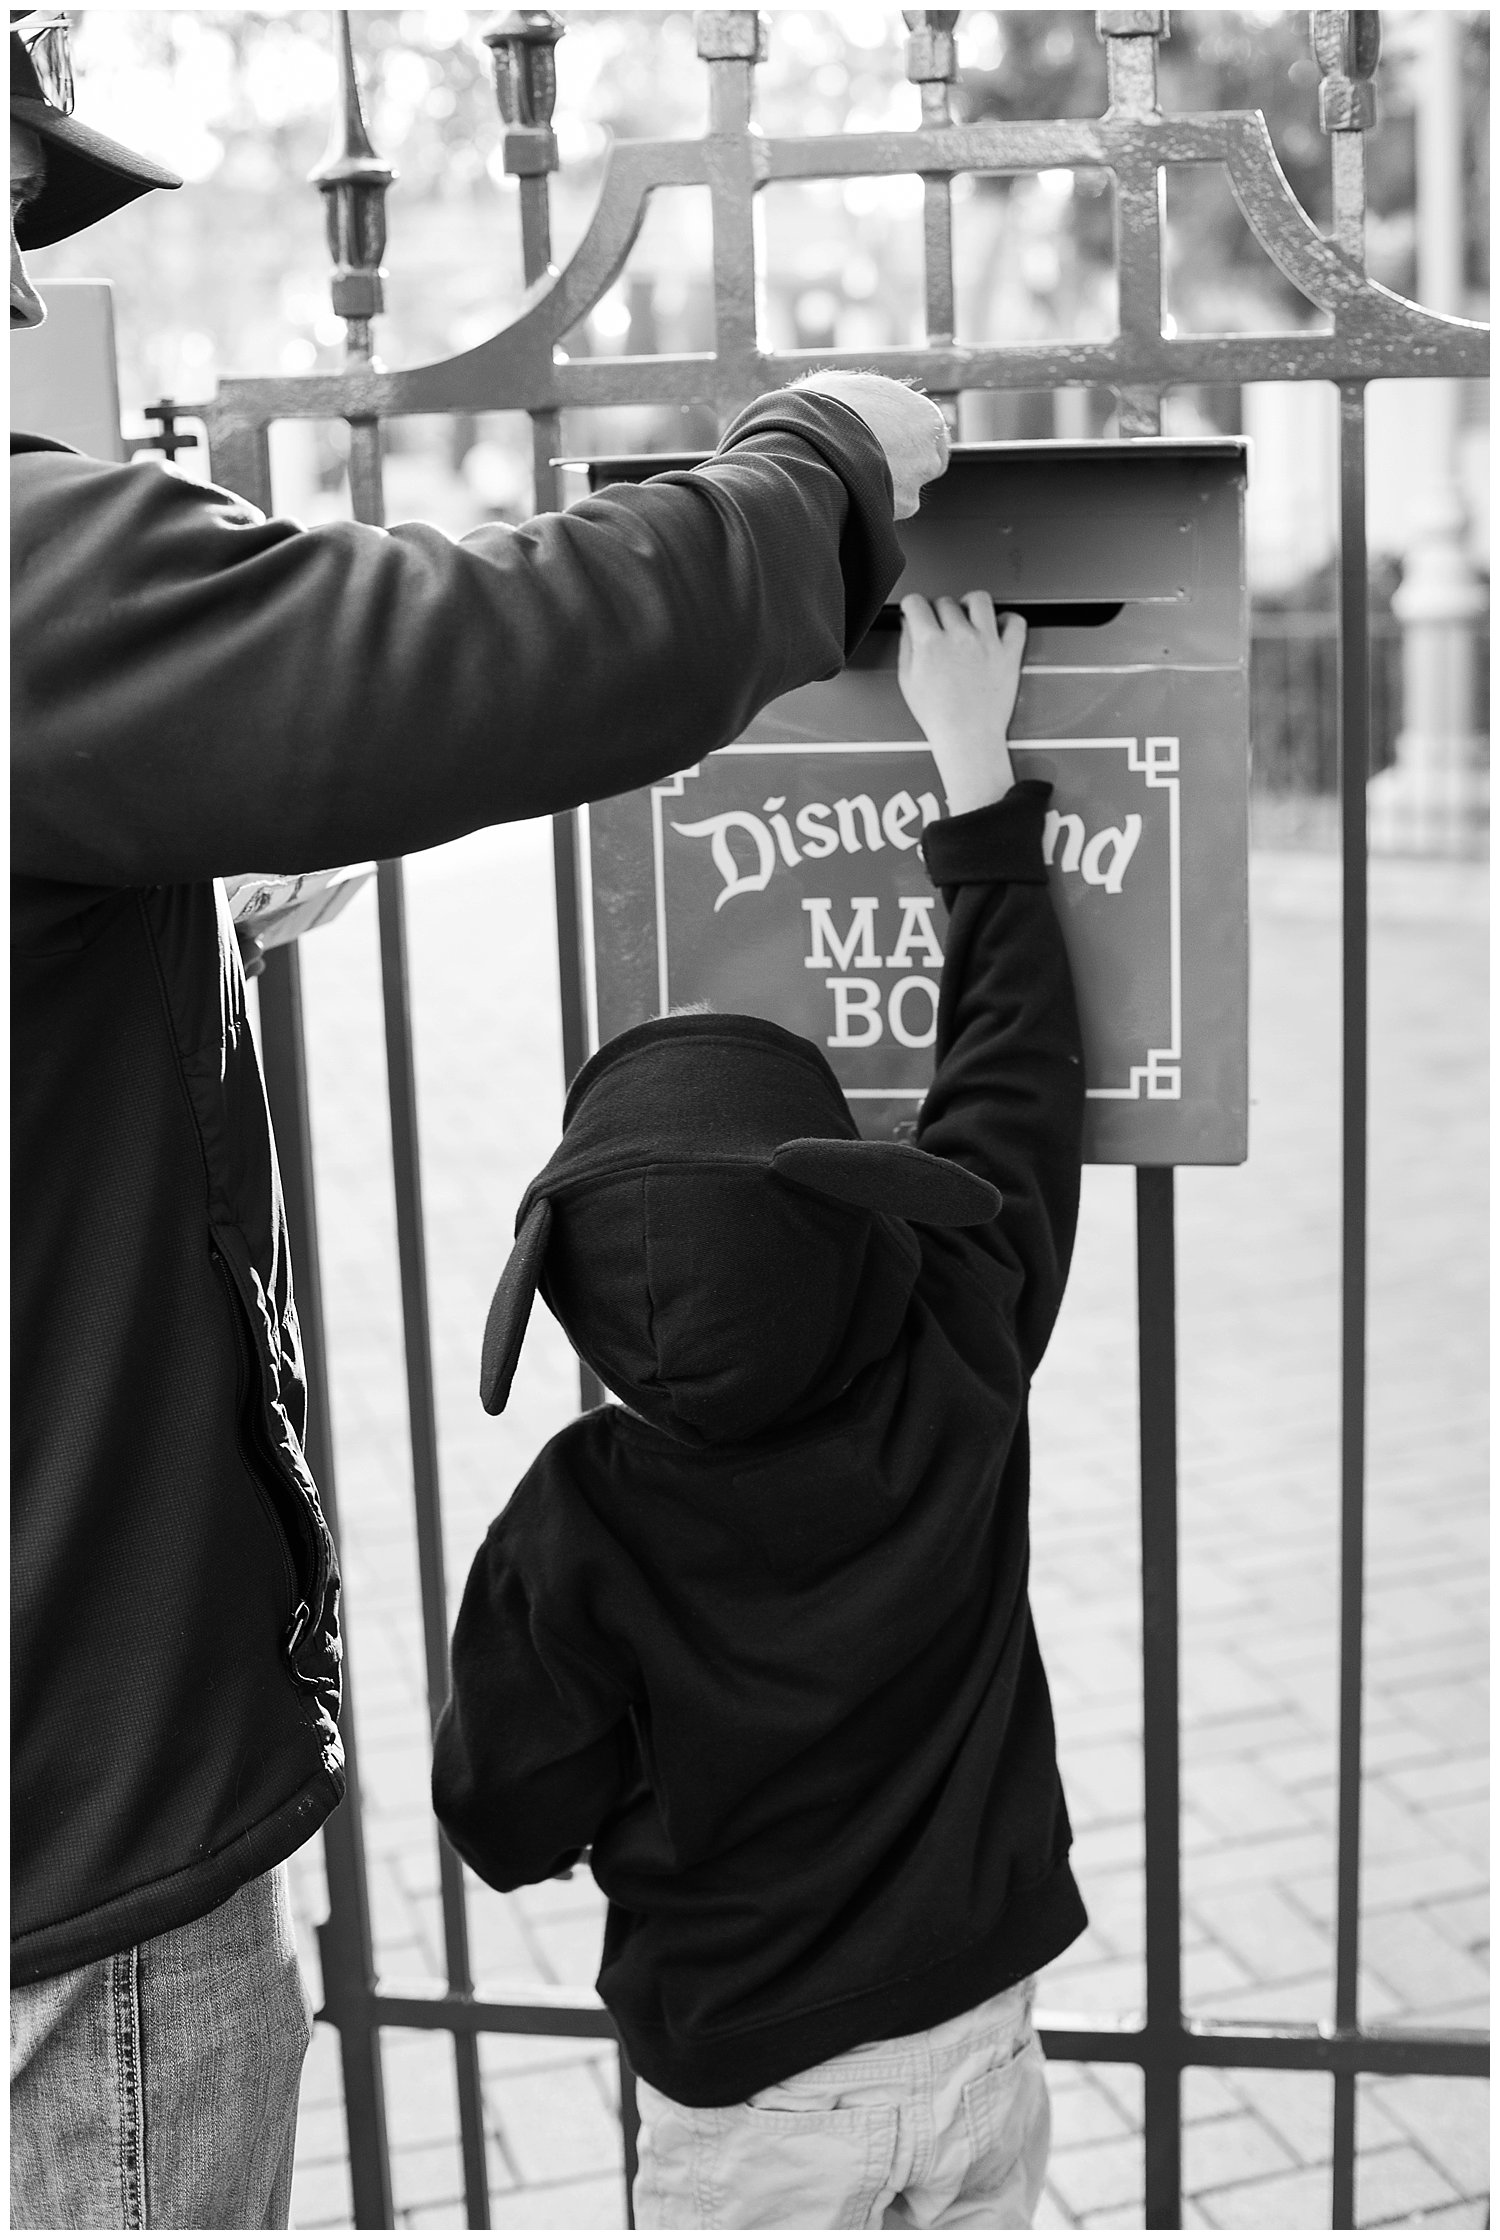 Declan had been saving a stack of mail for the characters in Disneyland for months and was so excited to finally get to put it in the mail box.